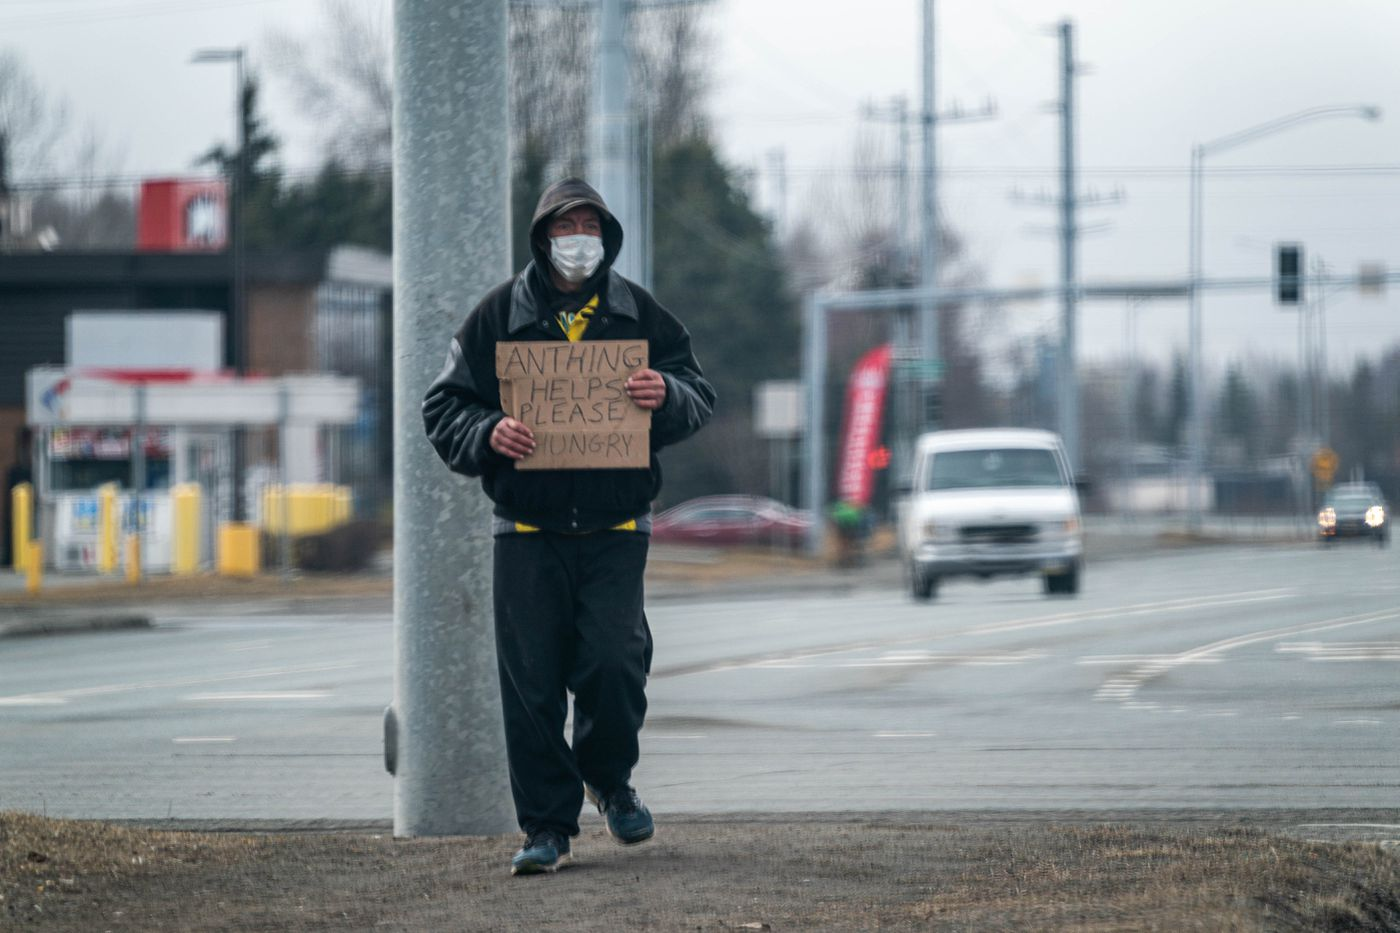 A panhandler wears a mask at an intersection in midtown Anchorage on Friday, April 17, 2020. (Loren Holmes / ADN)